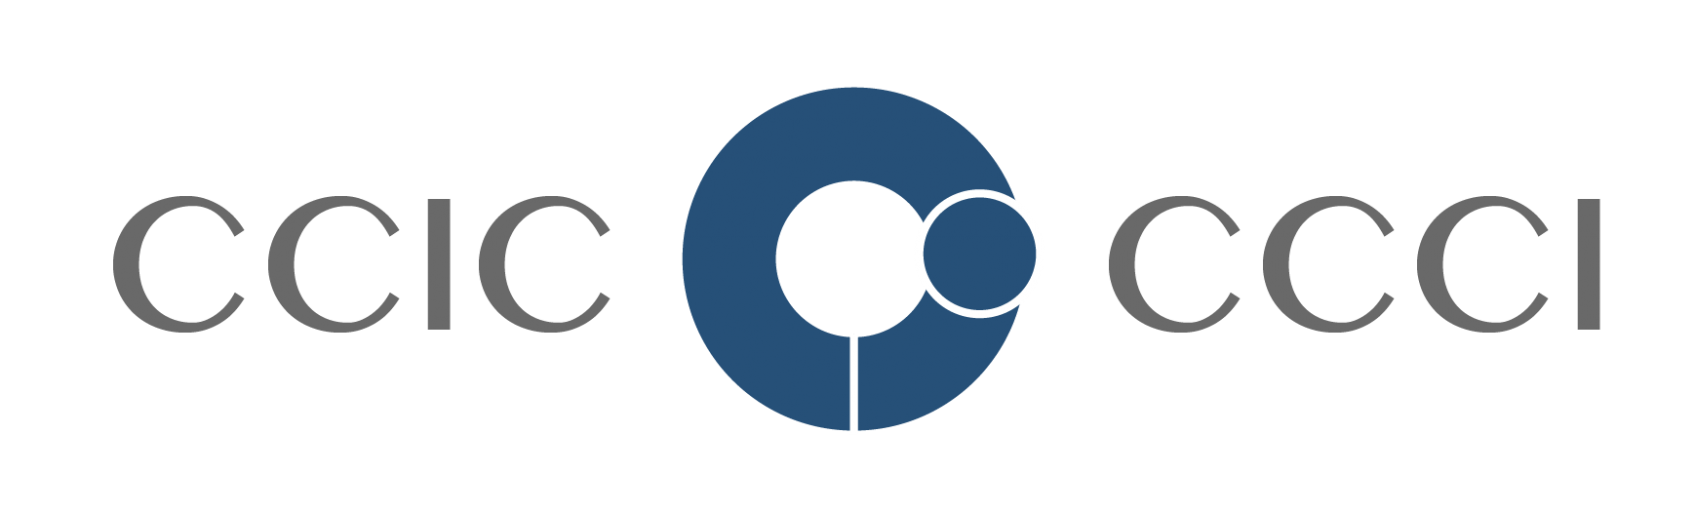 Canadian Council for International Co-operation - logo